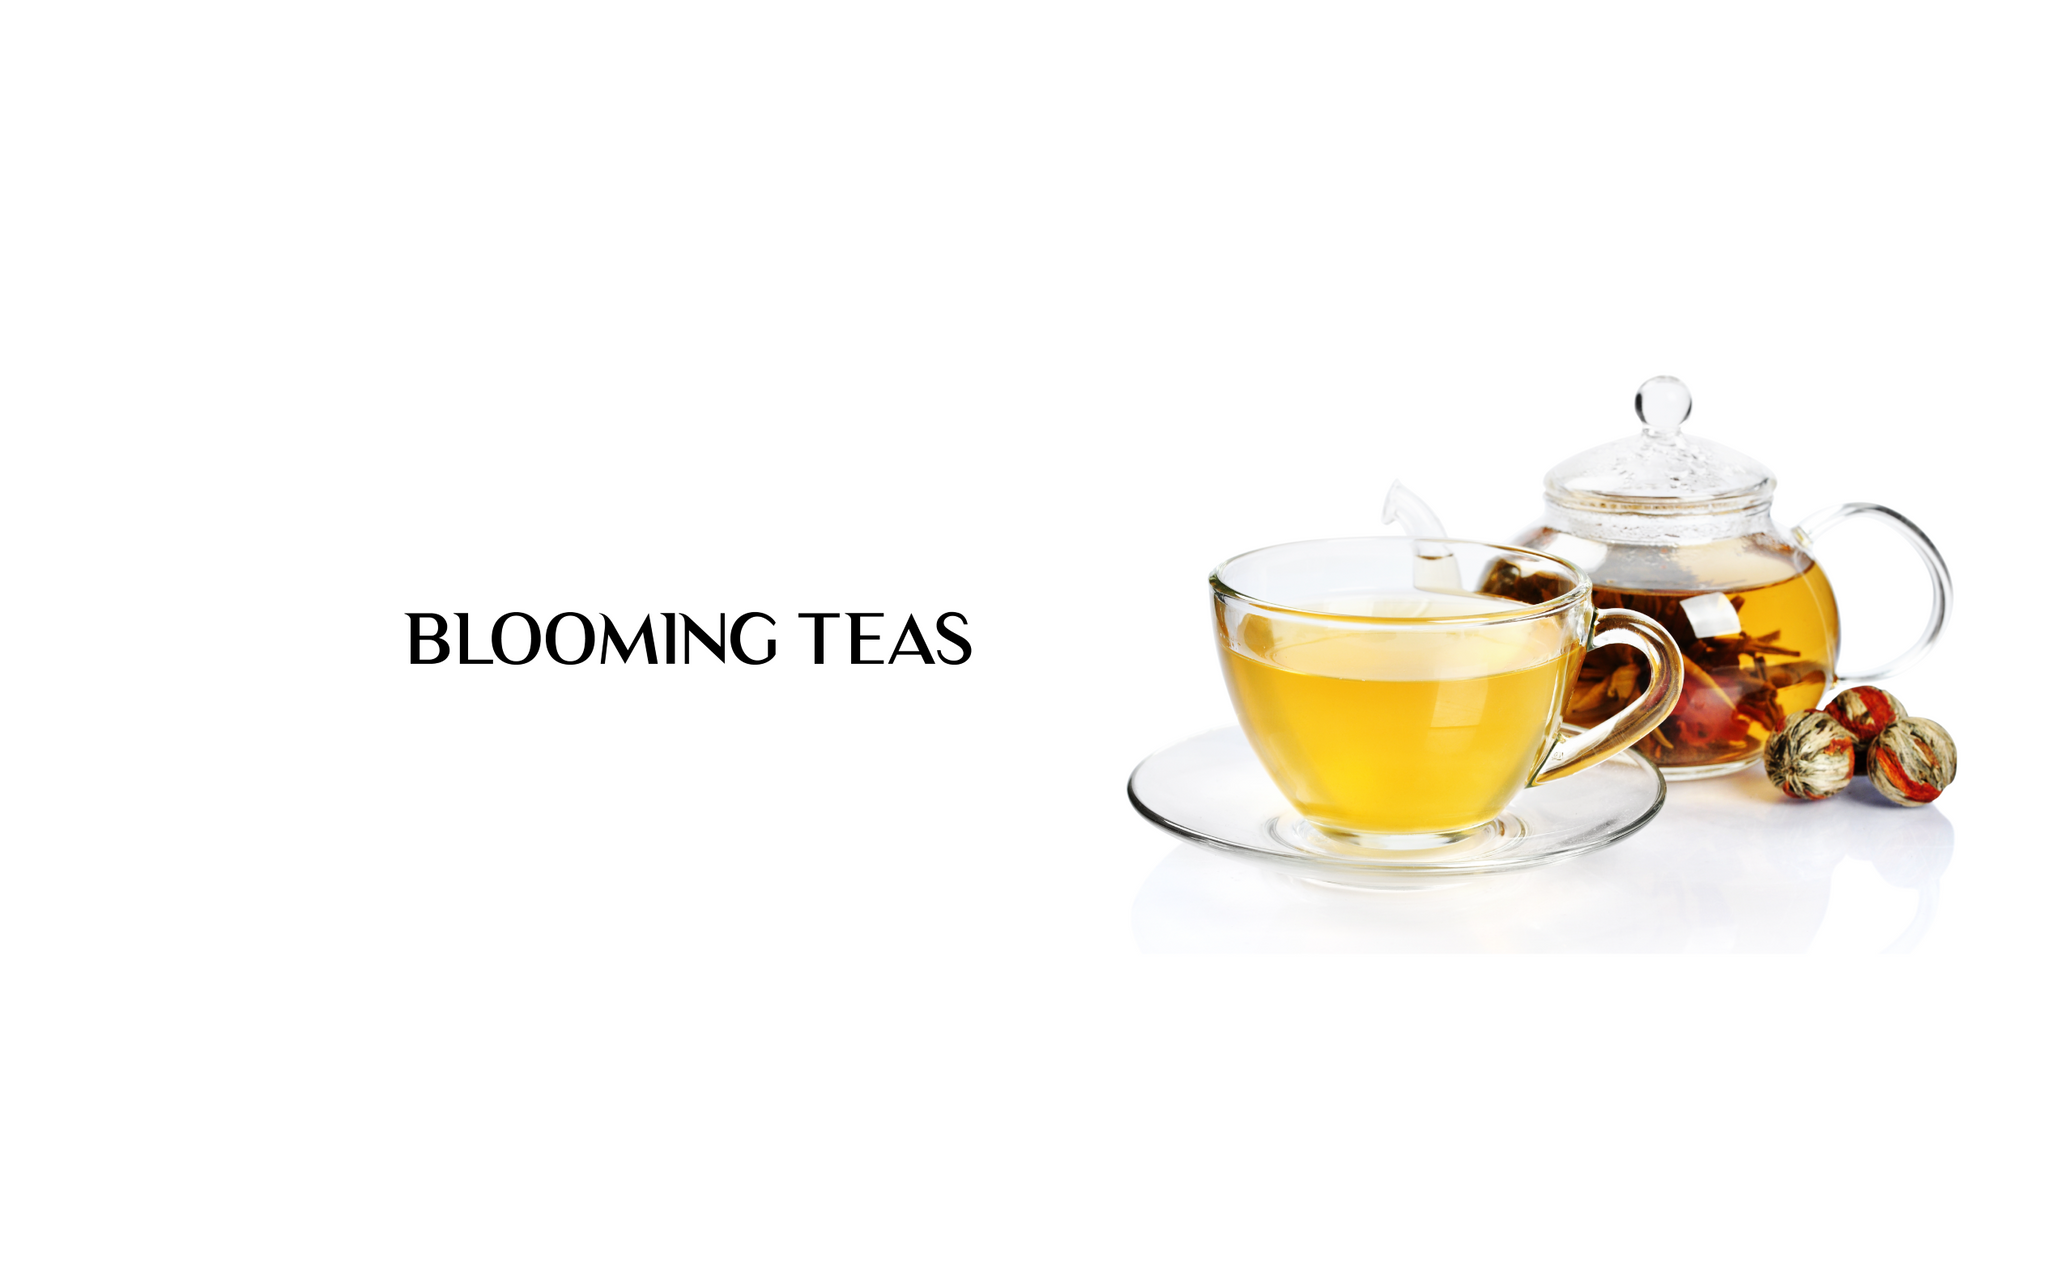 Blooming Teas